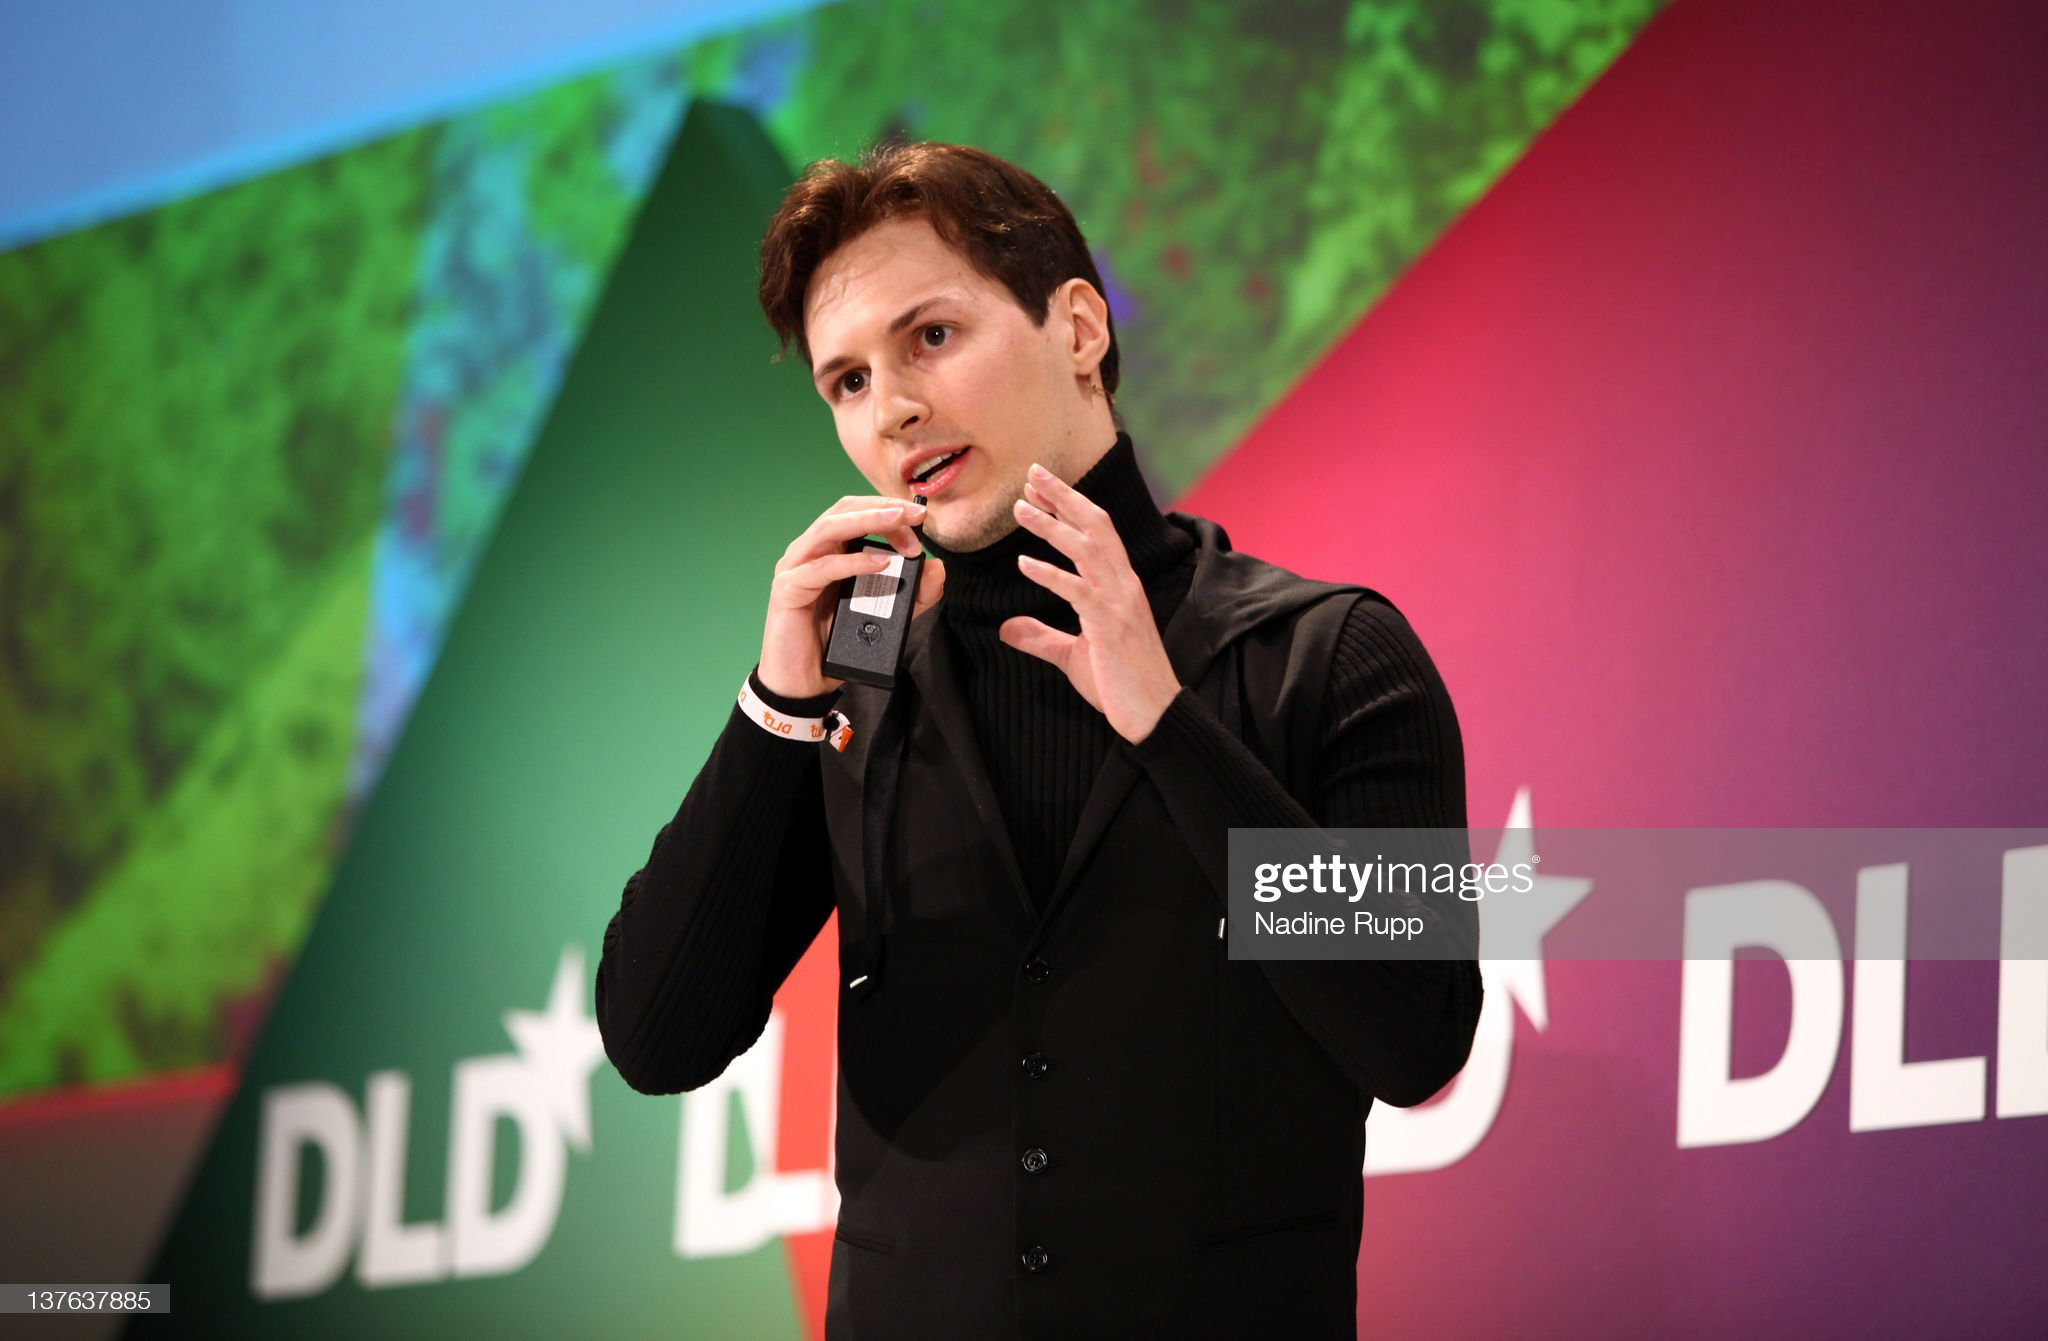 pavel durov in an event